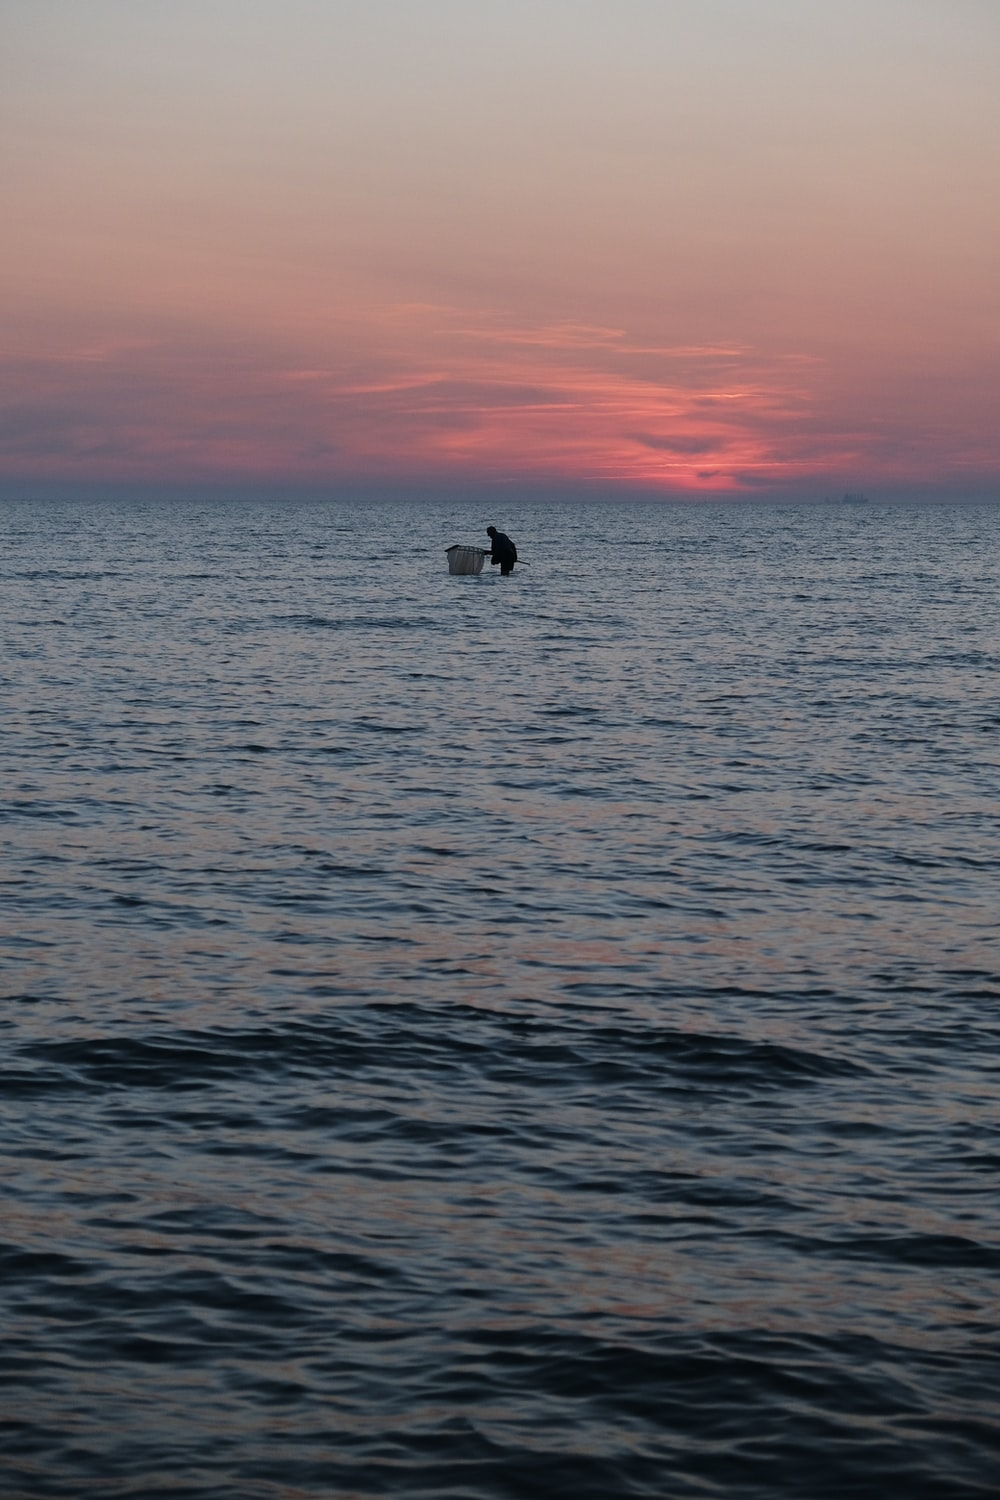 silhouette of person on boat on sea during sunset